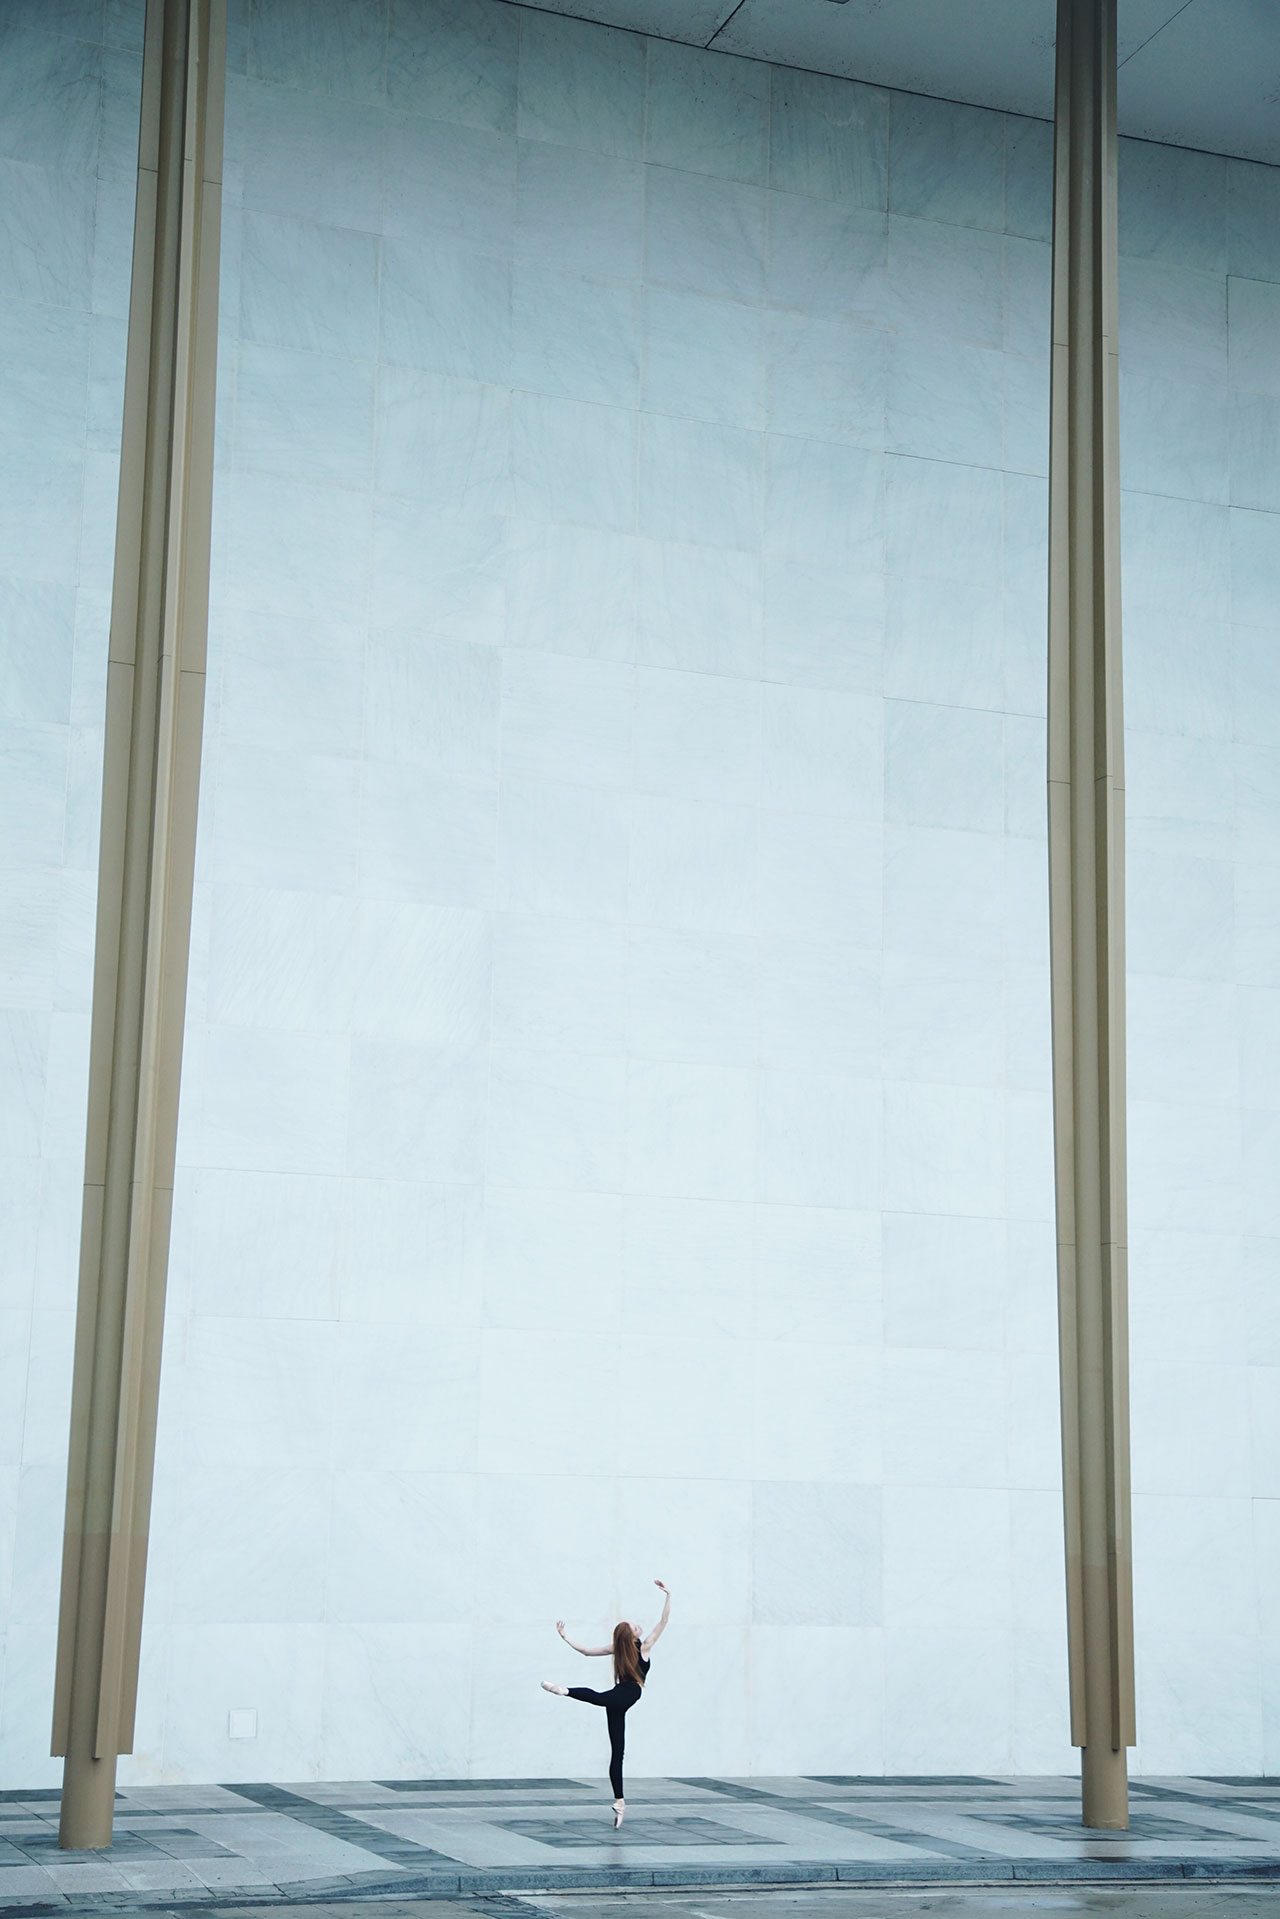 Location: The Kennedy Center | Dancer Melanie Riffee | Photo © Jacob Jonas from the series #CamerasandDancers.